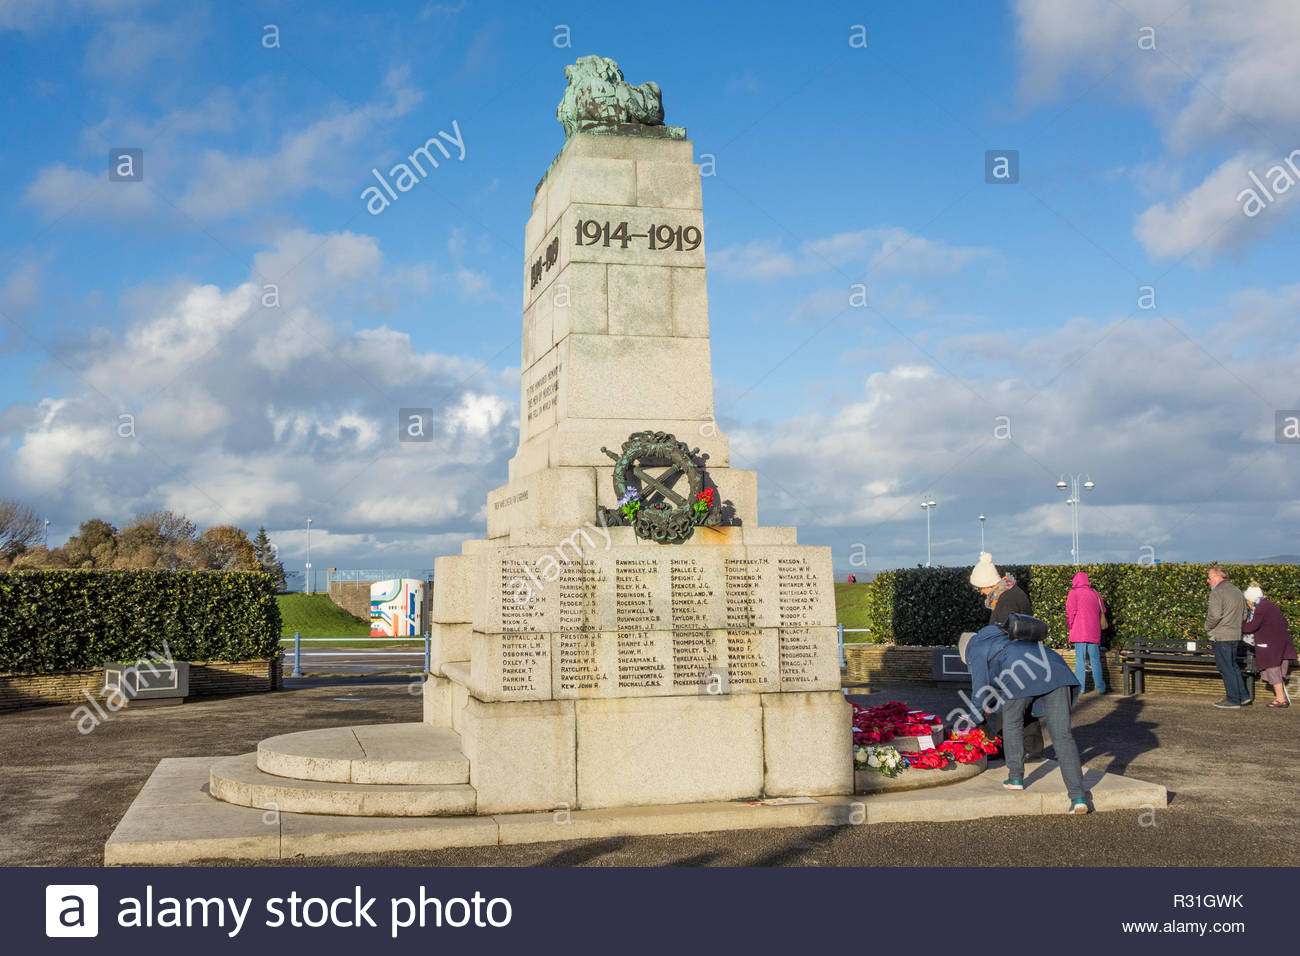 The war memorial on Marine Road, Morecambe, Lancashire on Remembrance Day 2018, 100 years after the end of the First World War - Stock Image